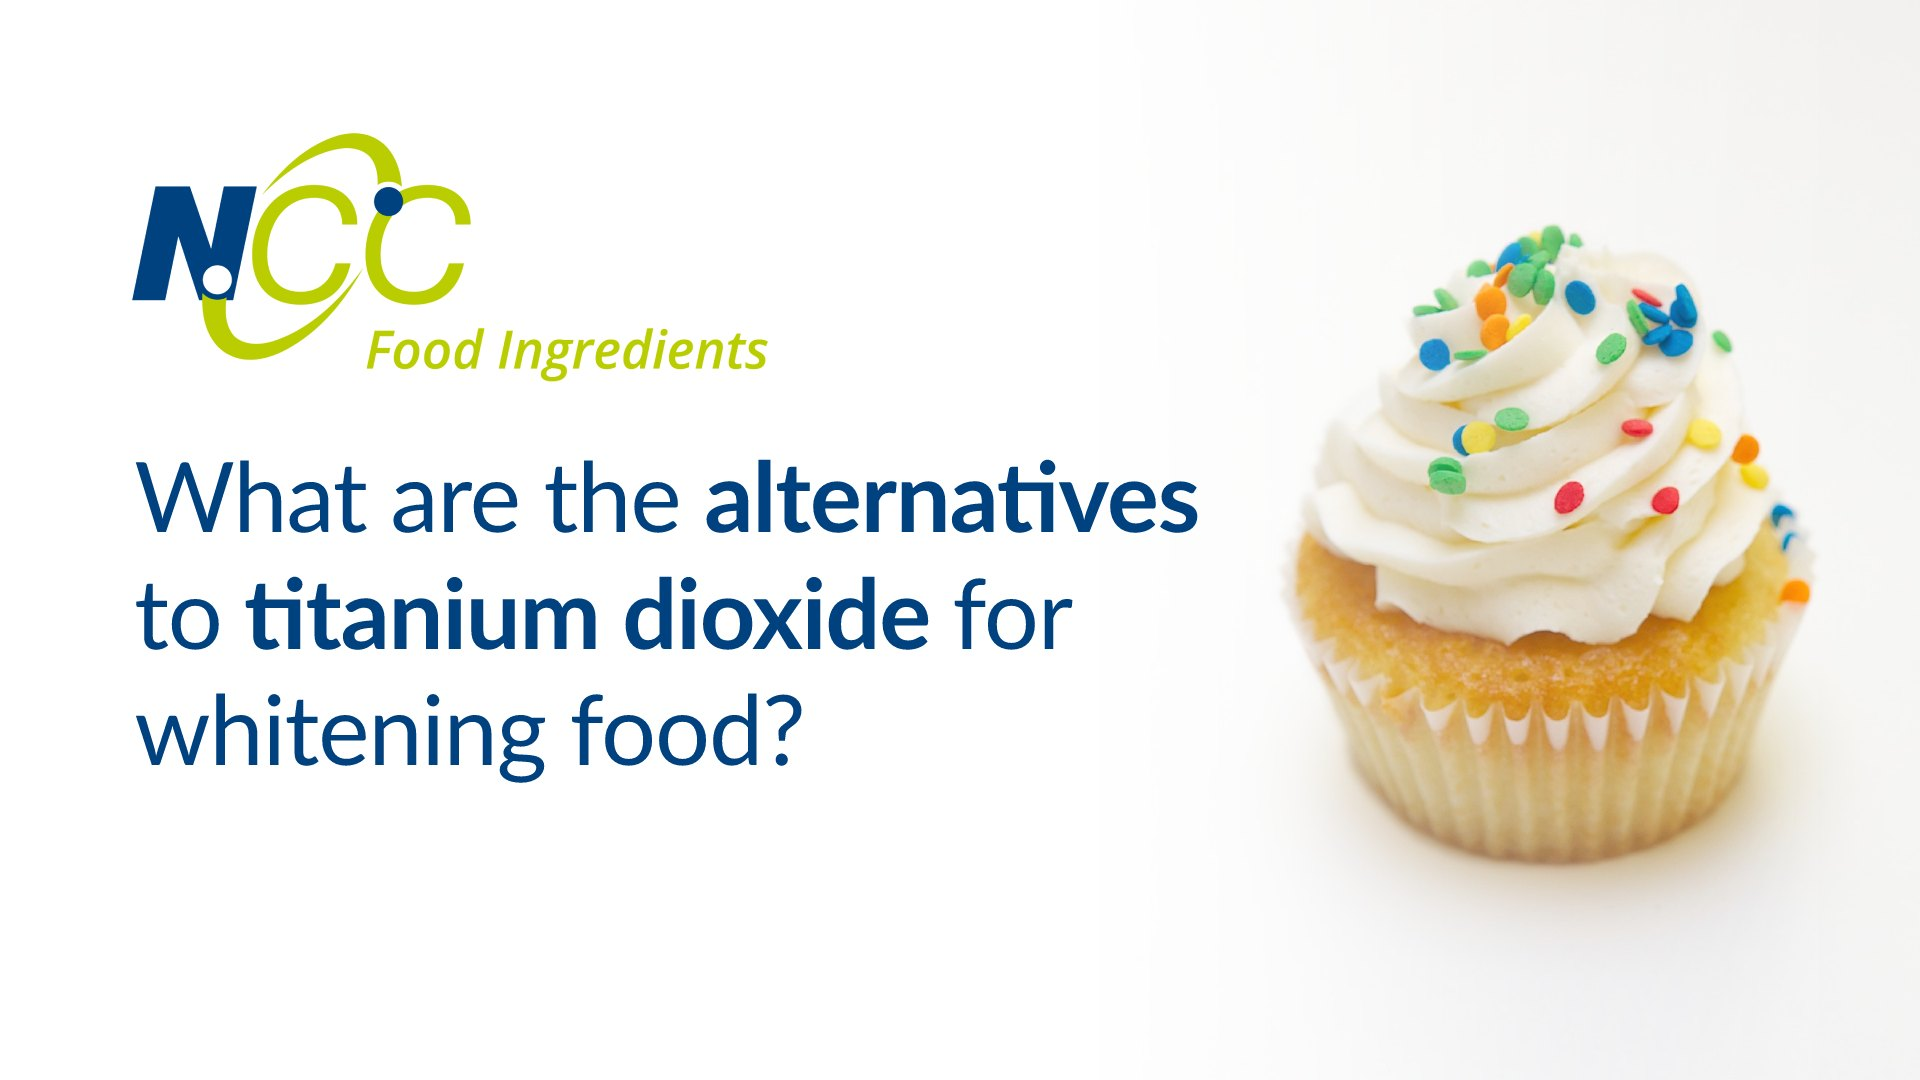 What are the alternatives to titanium dioxide for whitening food?